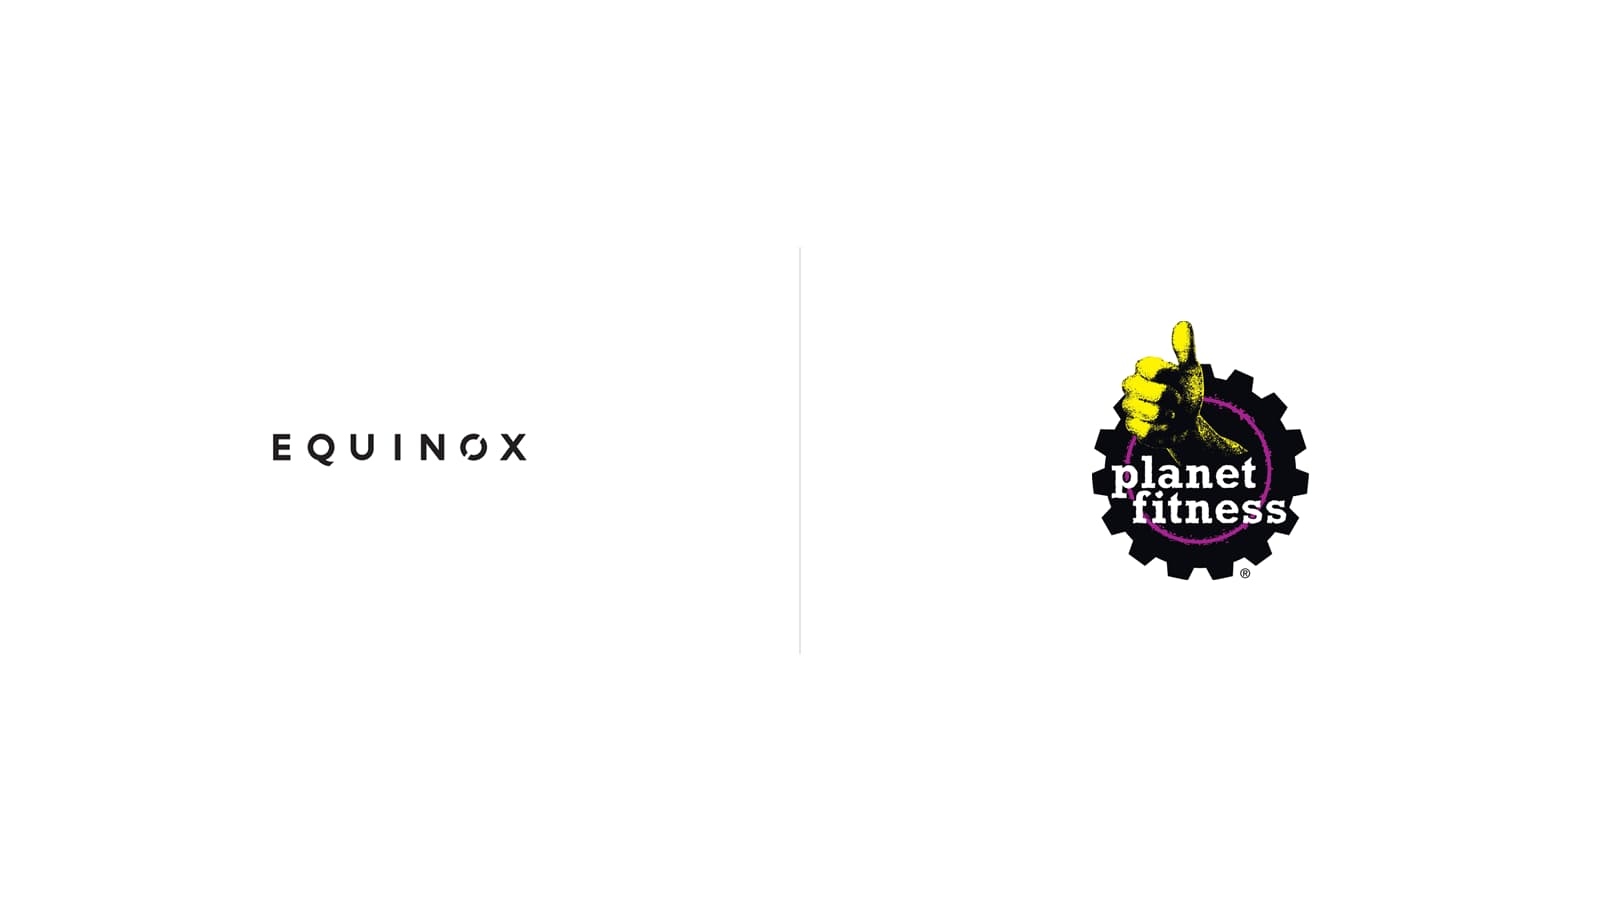 Equinox logo juxtaposed to Planet Fitness logo